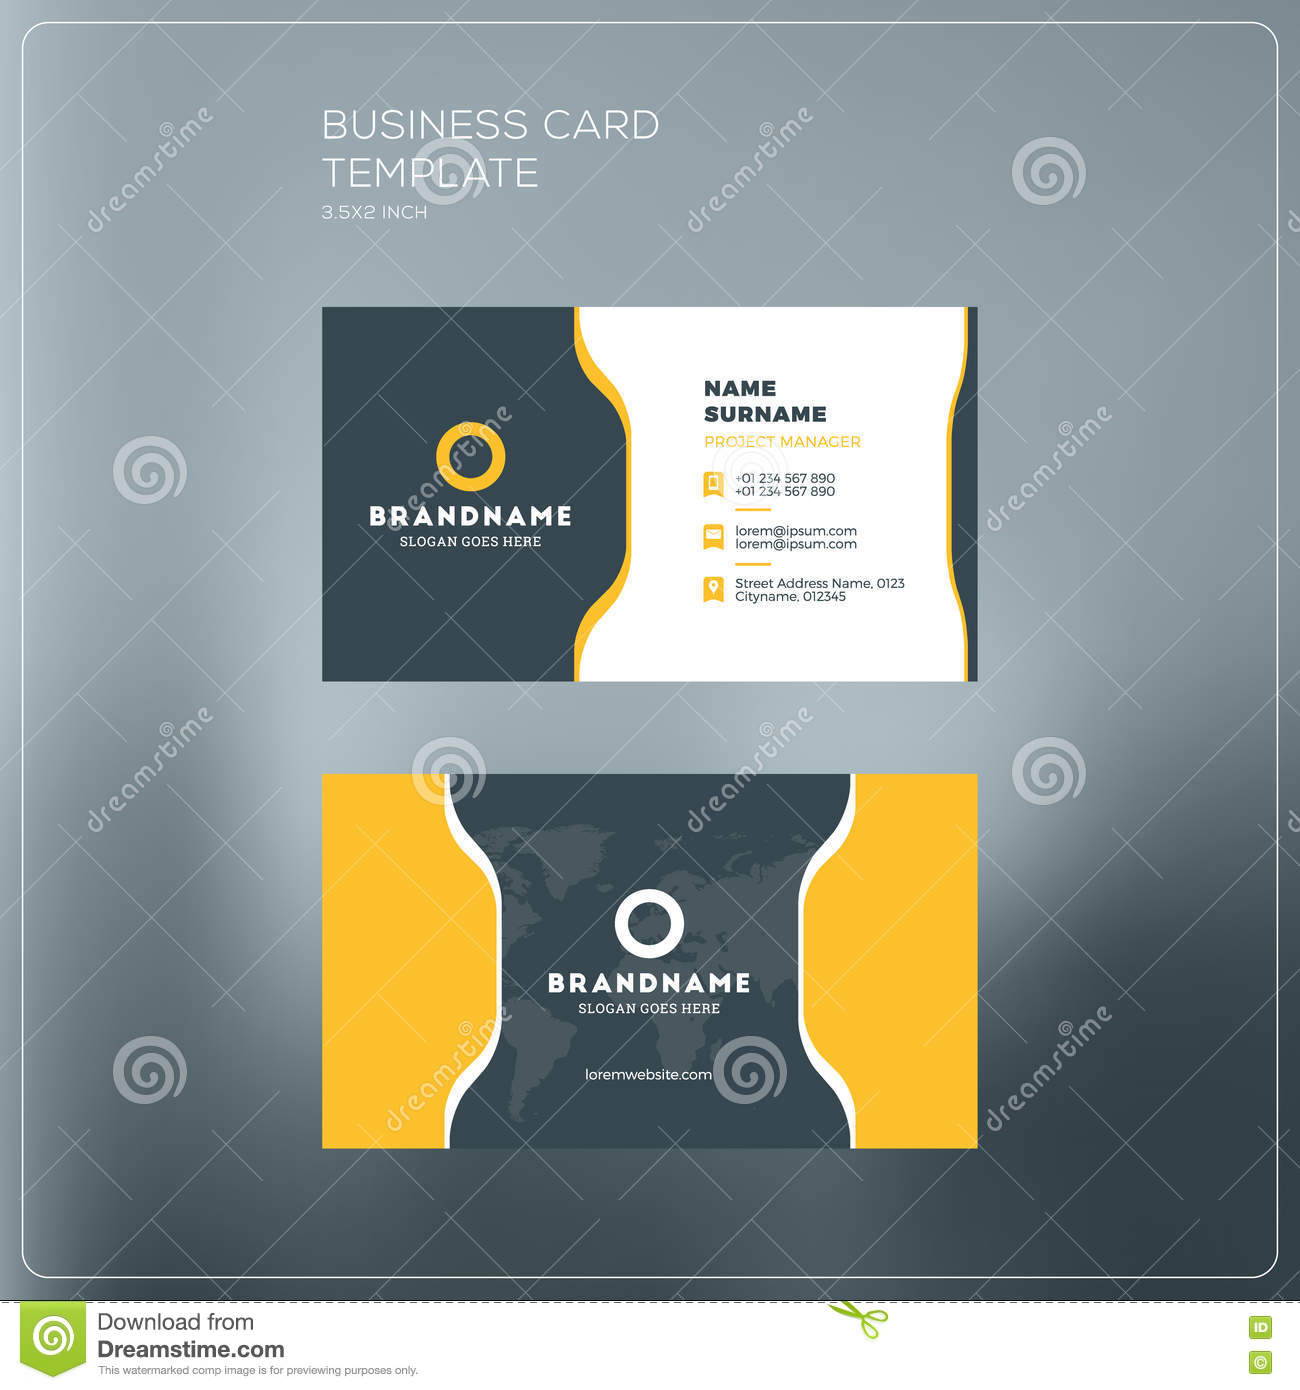 Corporate Business Card Print Template Personal Visiting Card - Personal business cards template